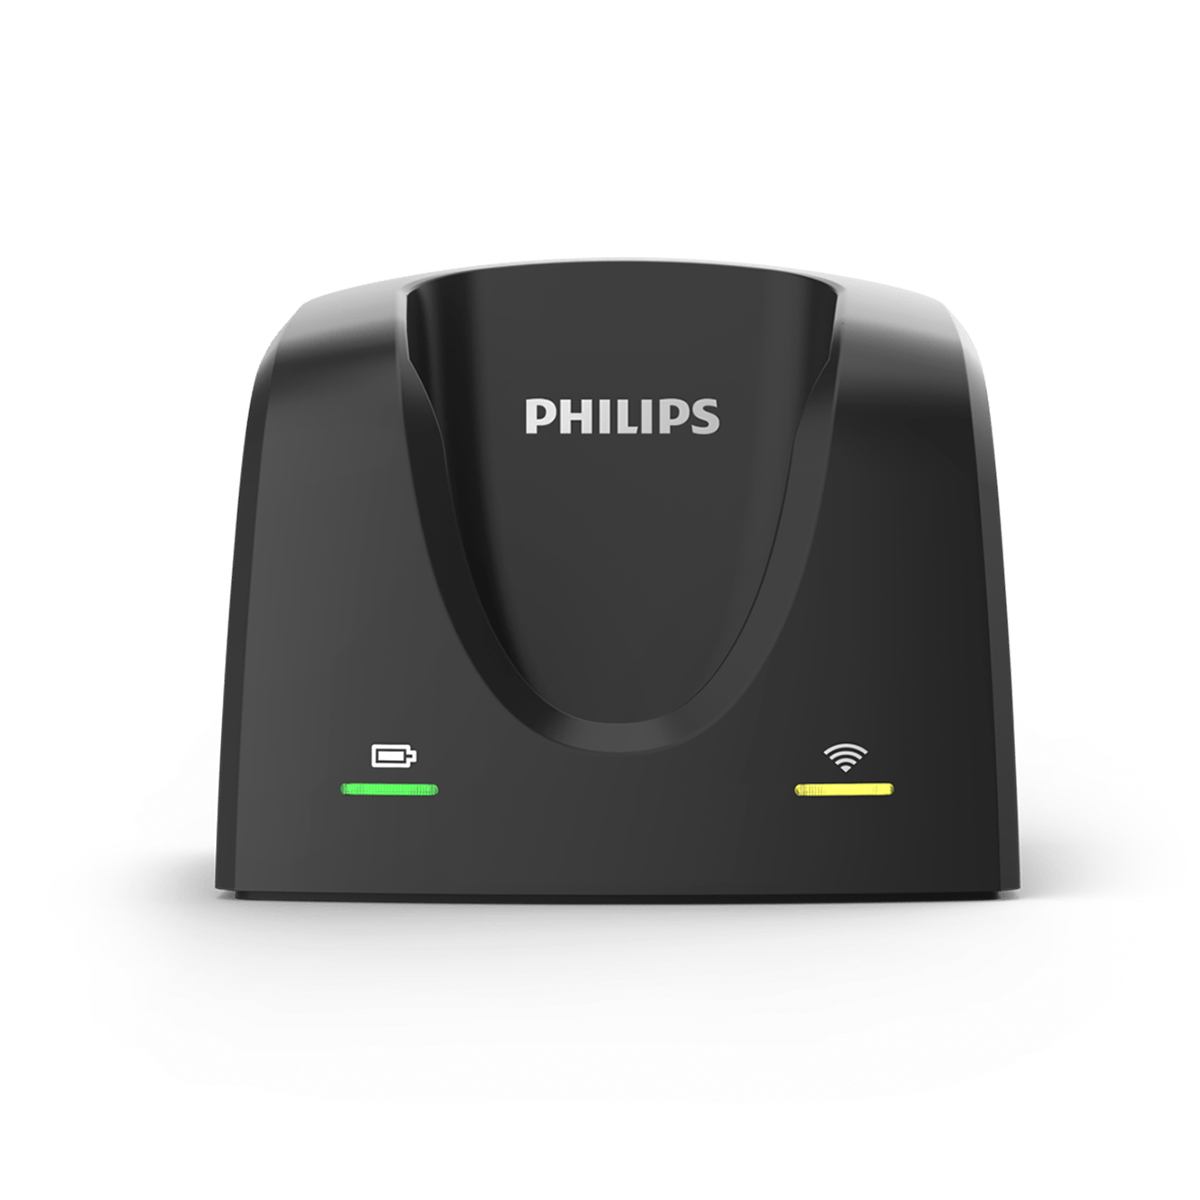 Philips ACC4000 Docking Station